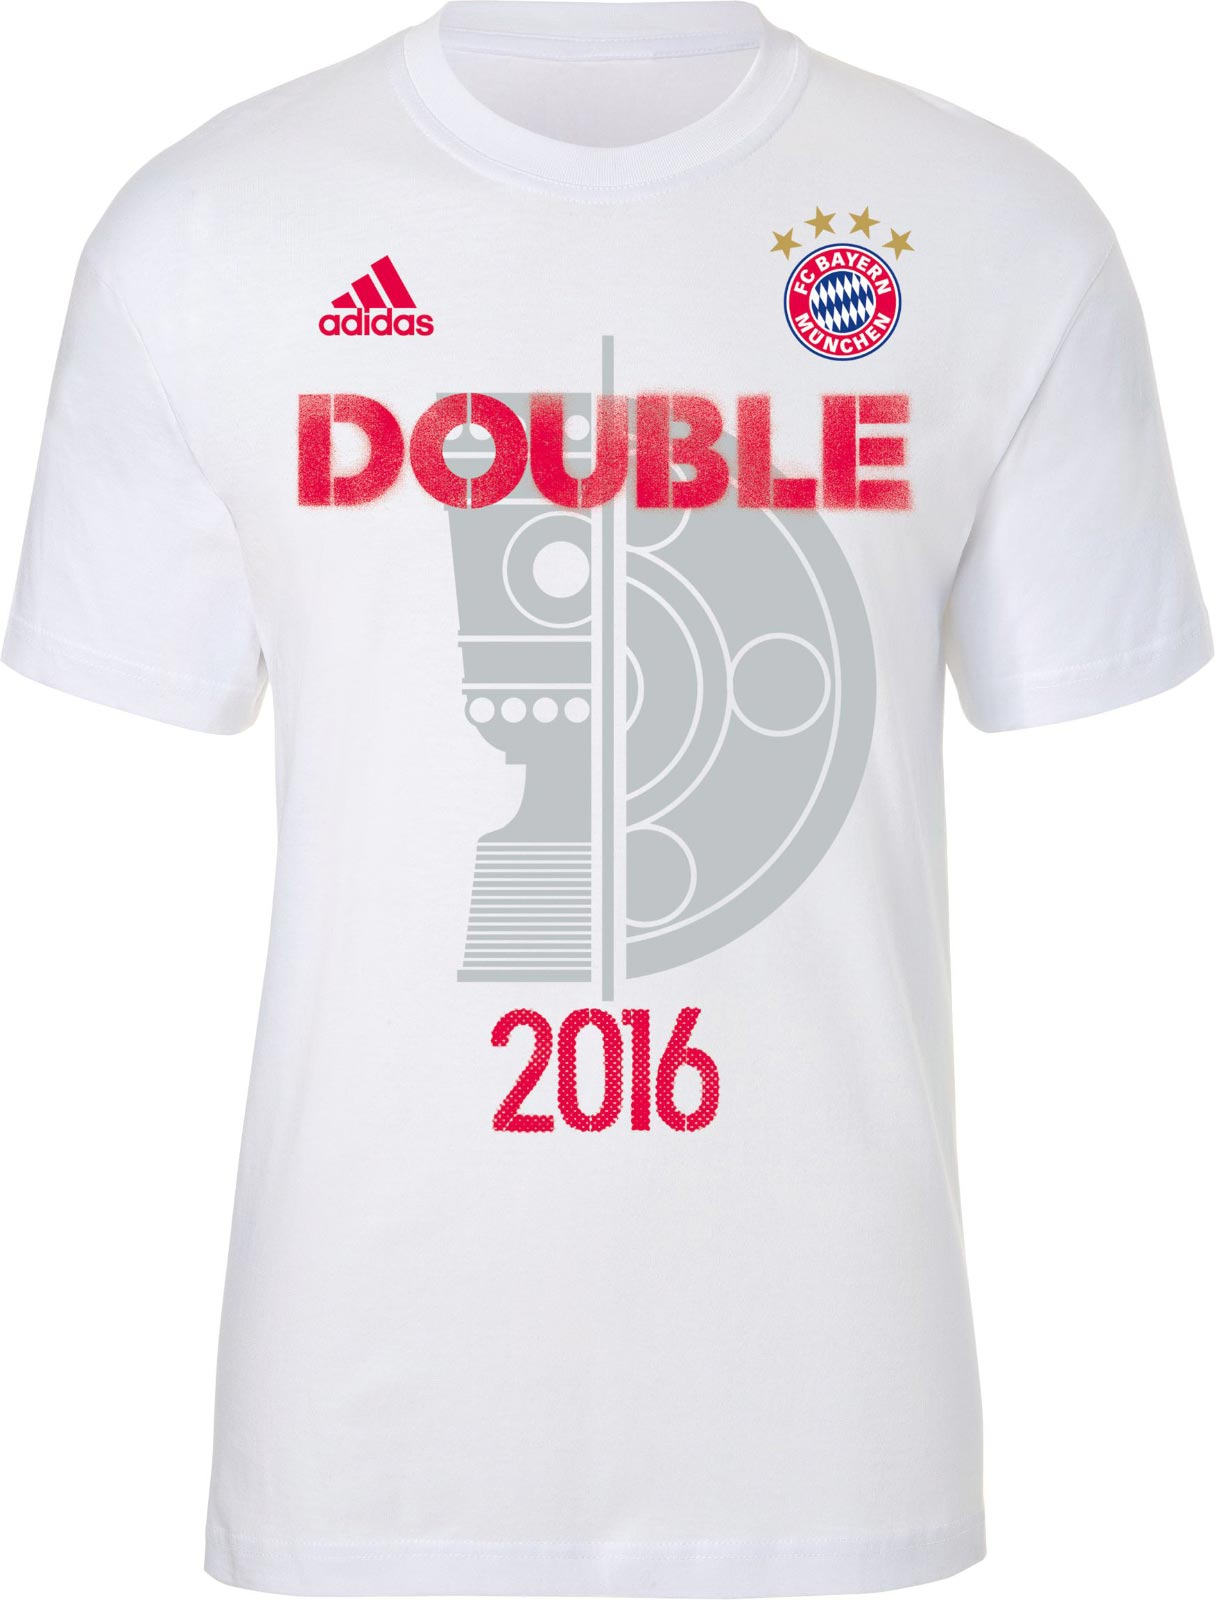 bayern munich 2016 double shirt unveiled footy headlines. Black Bedroom Furniture Sets. Home Design Ideas